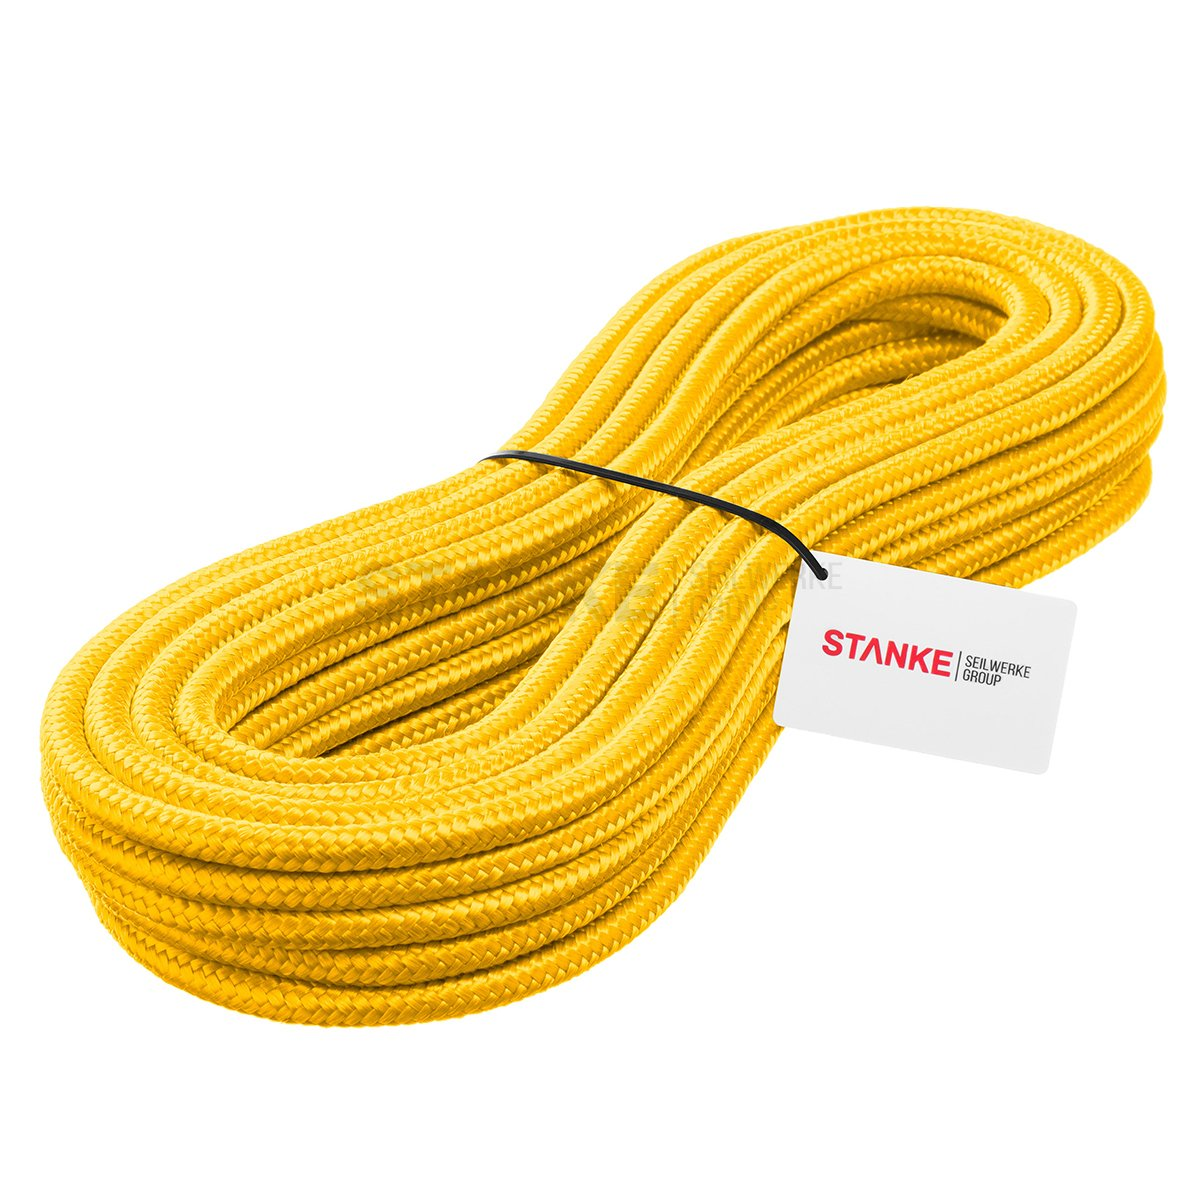 Seilwerk STANKE 20 m 10 mm Polypropylene Hollow Braided General Purpose Rope PP Line Mooring Anchor And Rigging Line Heavy Duty Twine Yellow